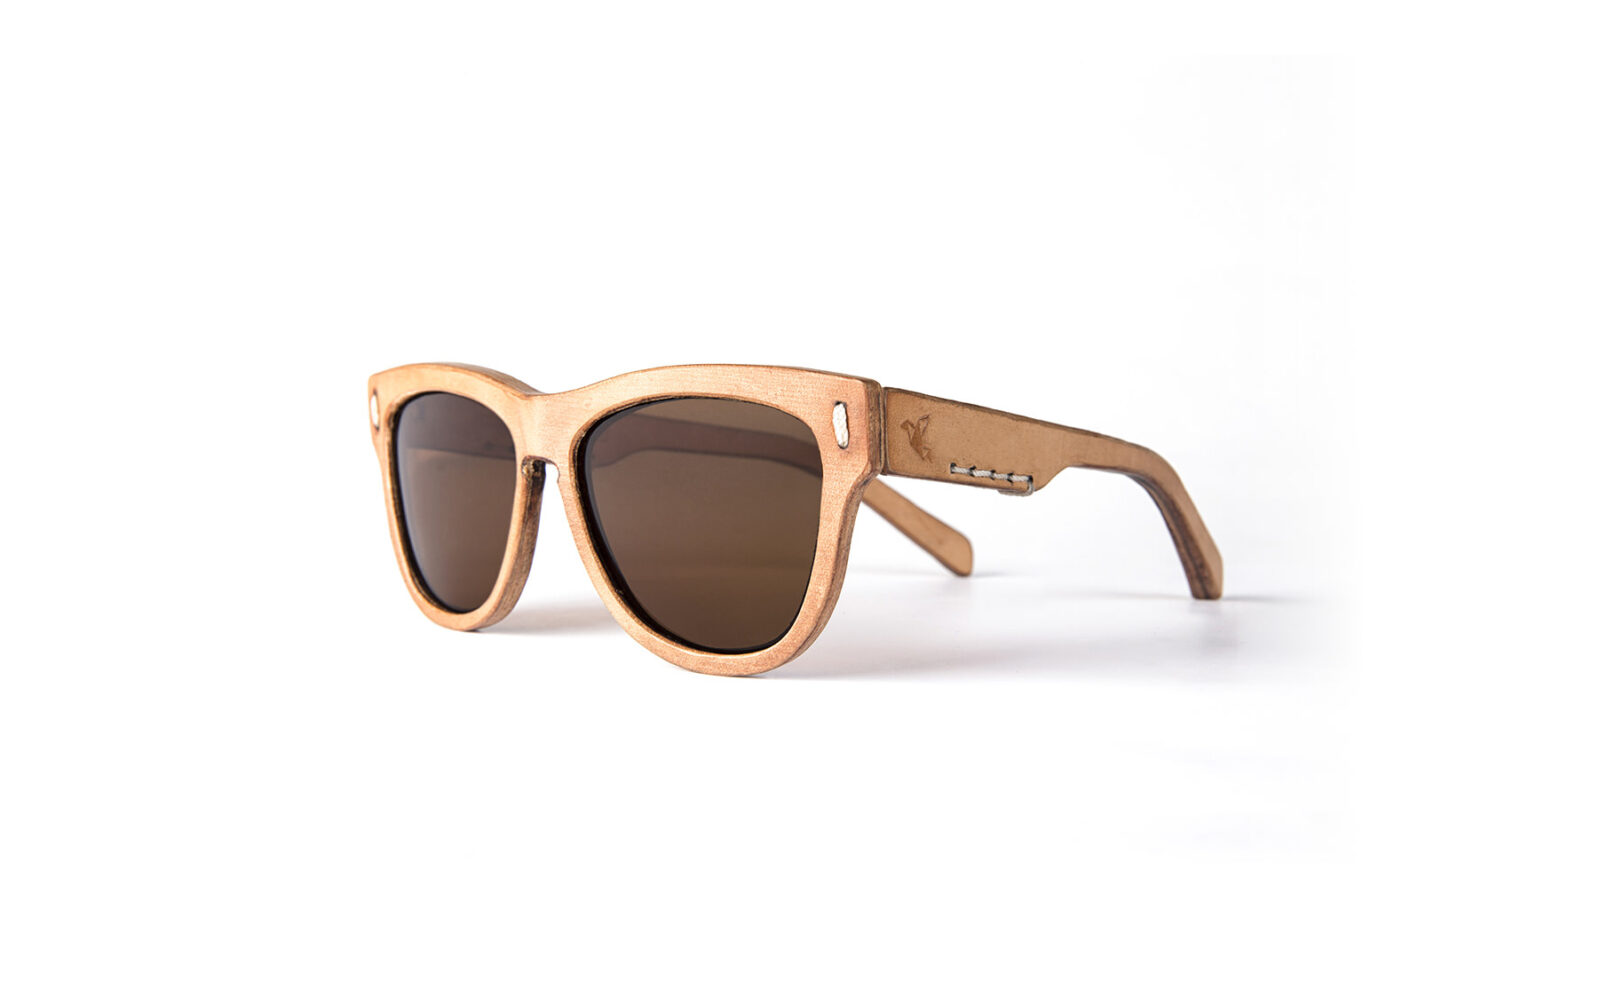 Leather Sunglasses 1600x1005 - Jbird Collective Leather Sunglasses